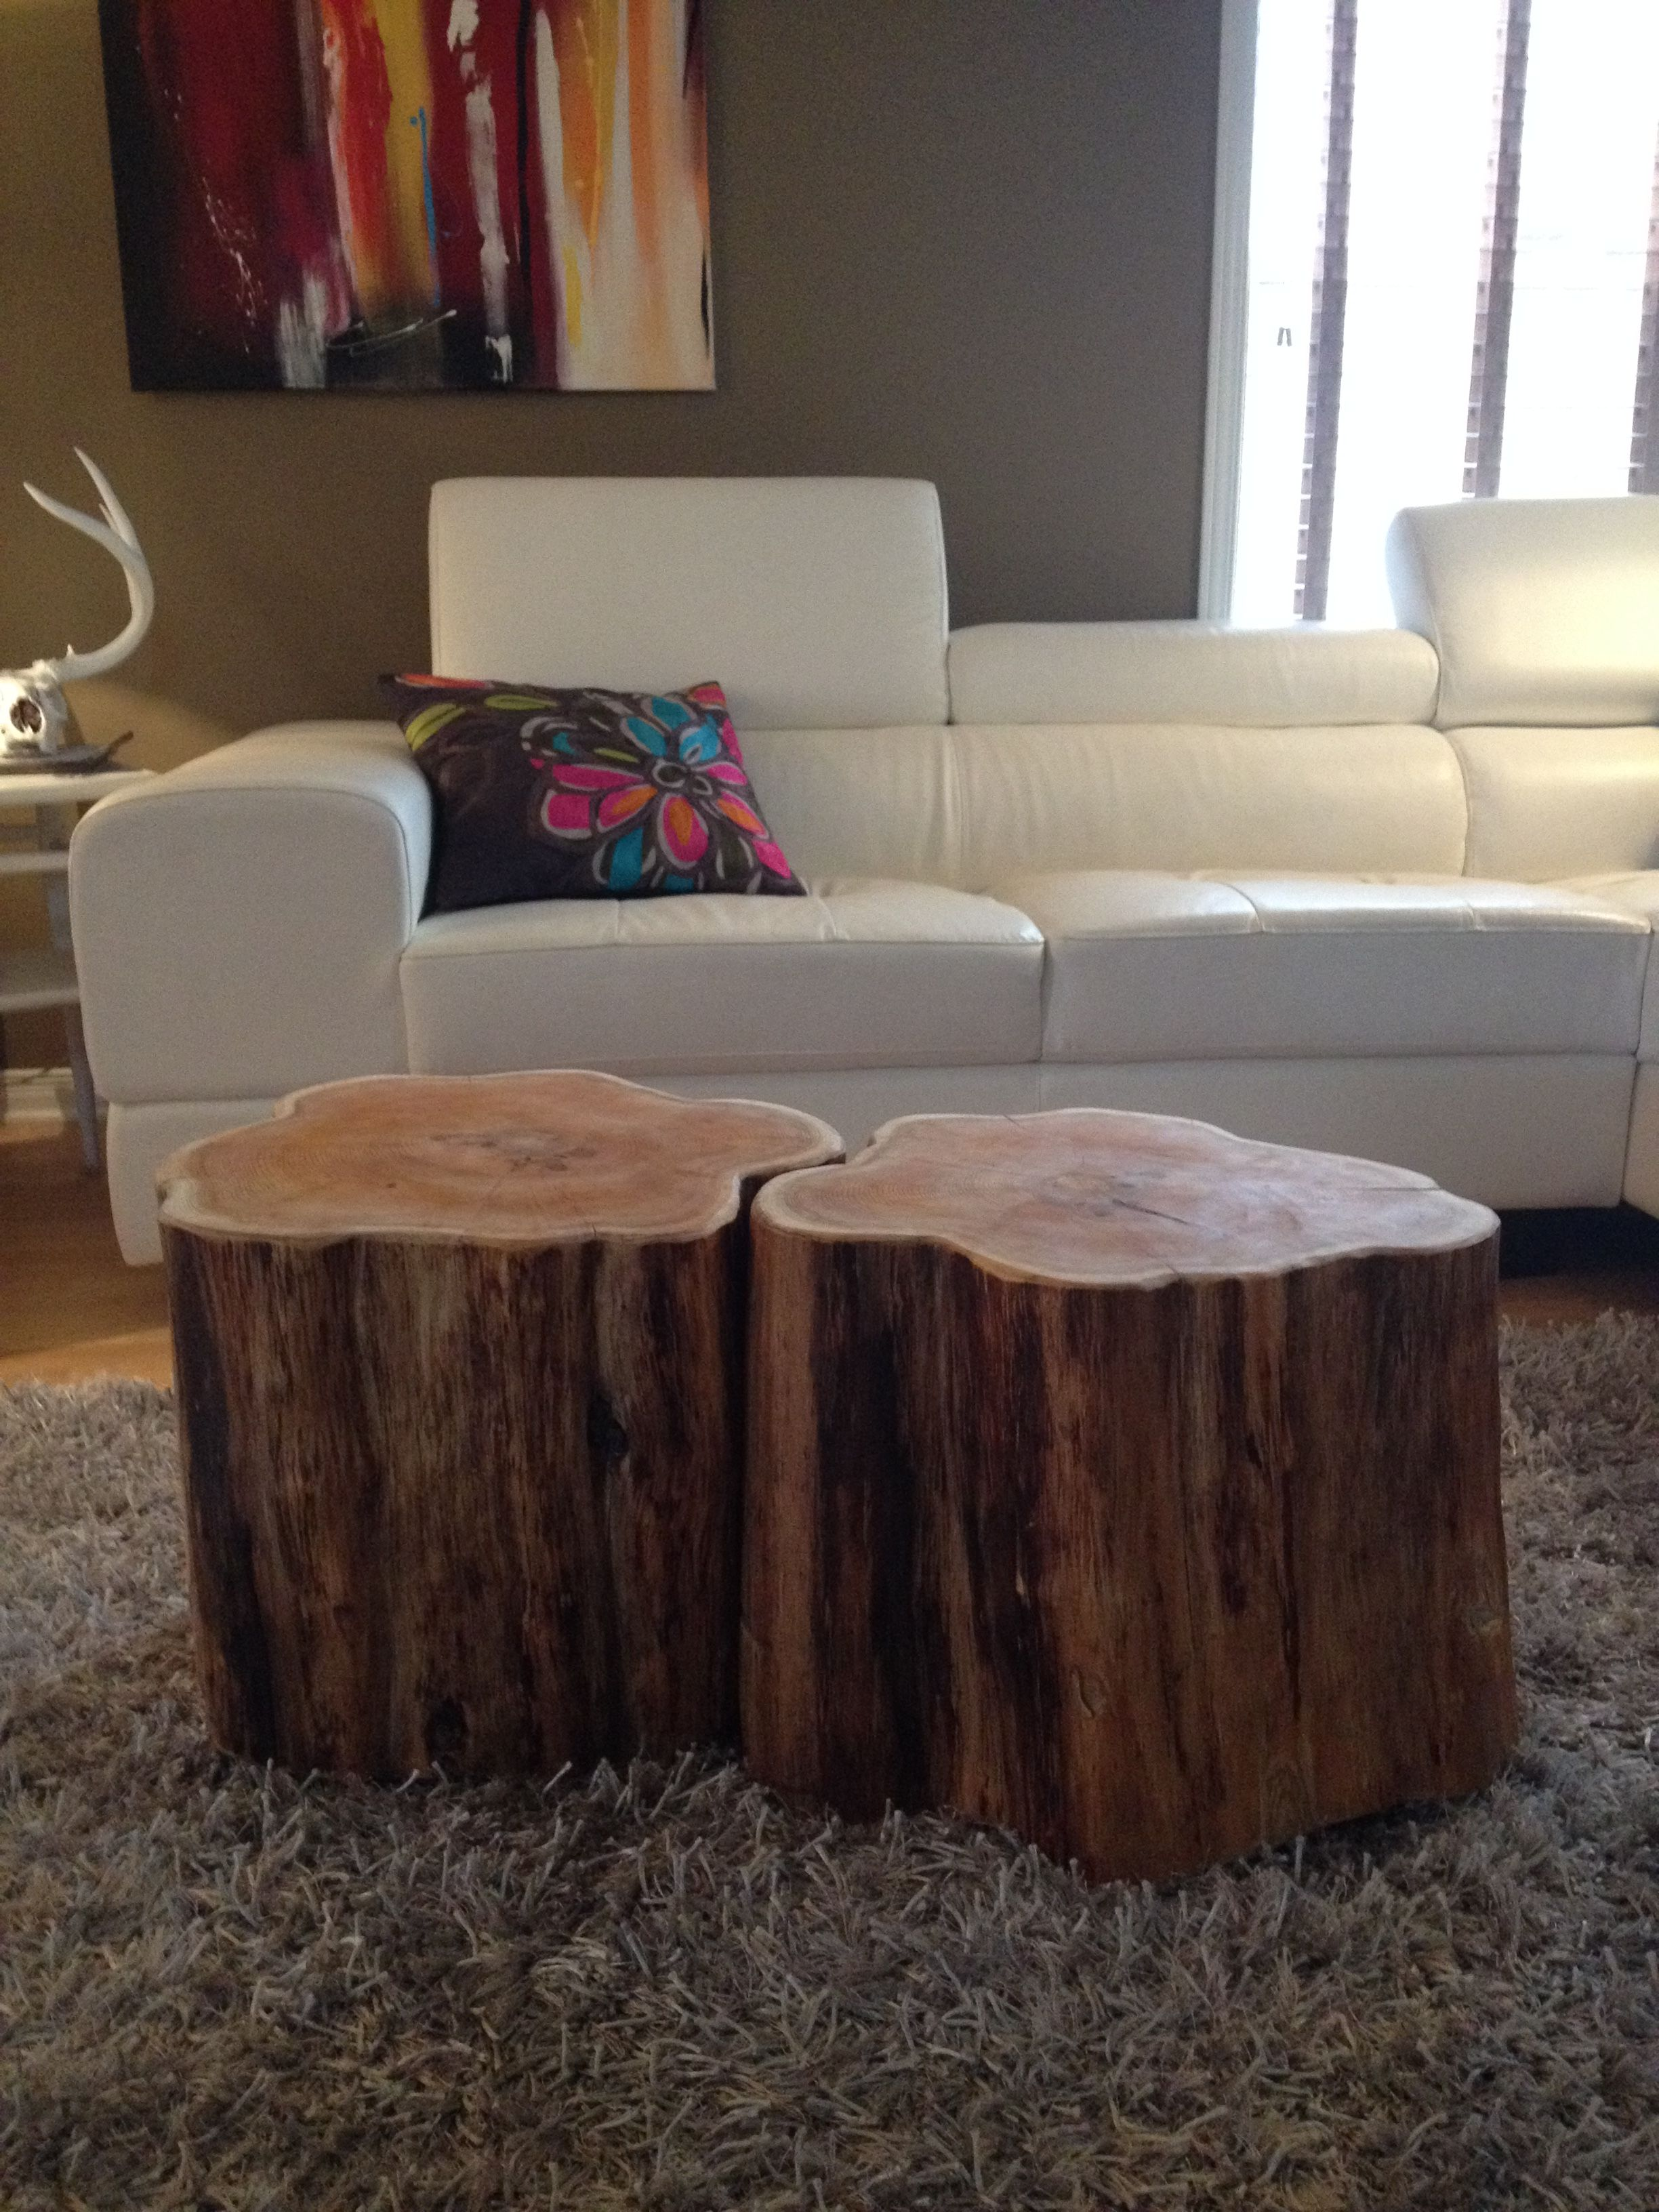 Charmant Stump Coffee Tables Serenitystumps.com Tree Trunk Tables. Stump Coffee Table  Like Ellen Ottawa, Ontario Canada Sump Coffee Table Like Ellen Show Tree  Trunk ...